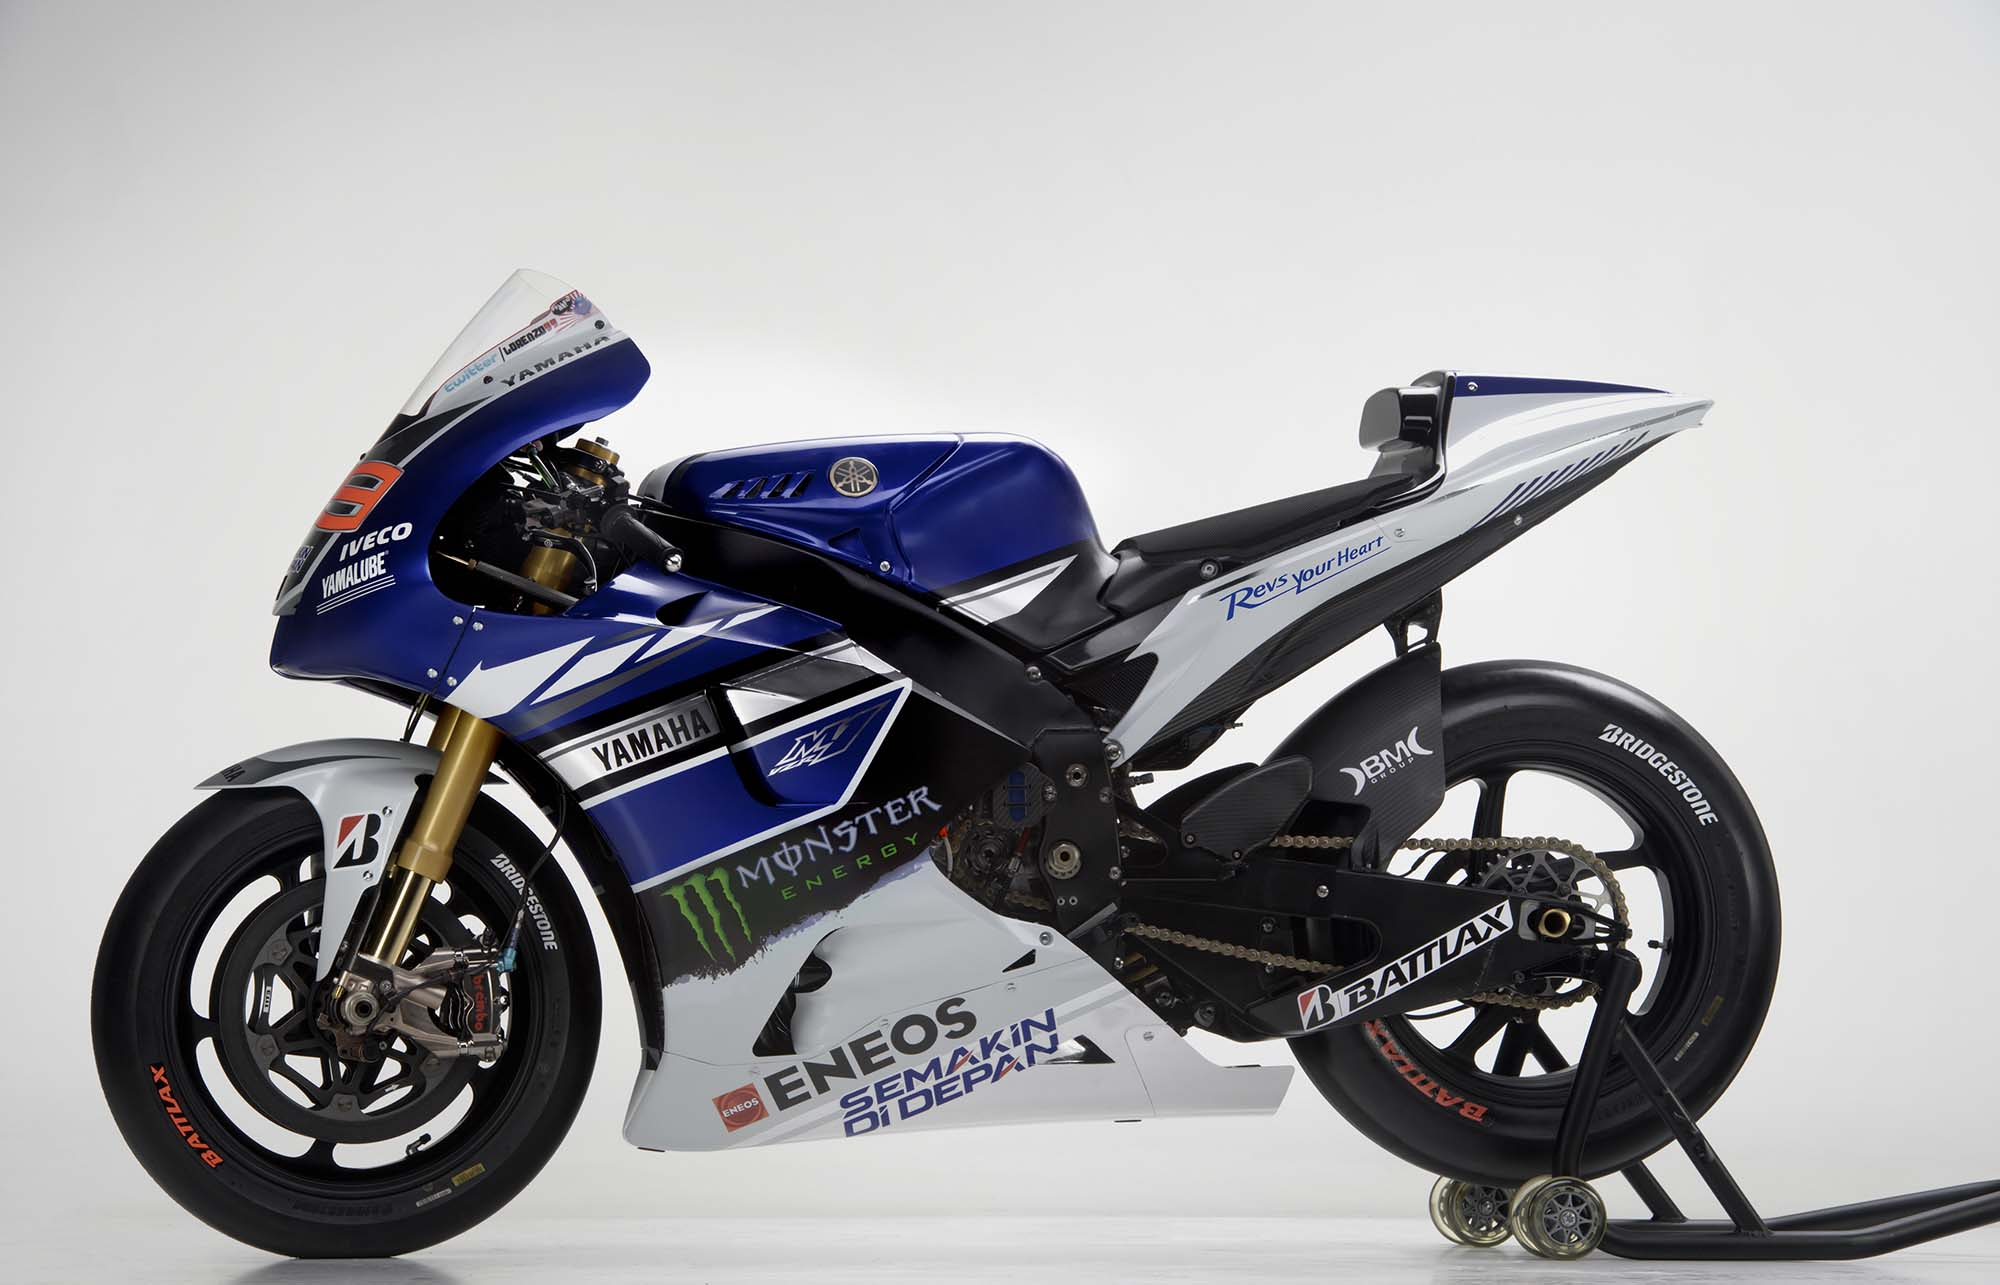 Rossi, Lorenzo, and the 2013 Yamaha YZR-M1 - Asphalt & Rubber